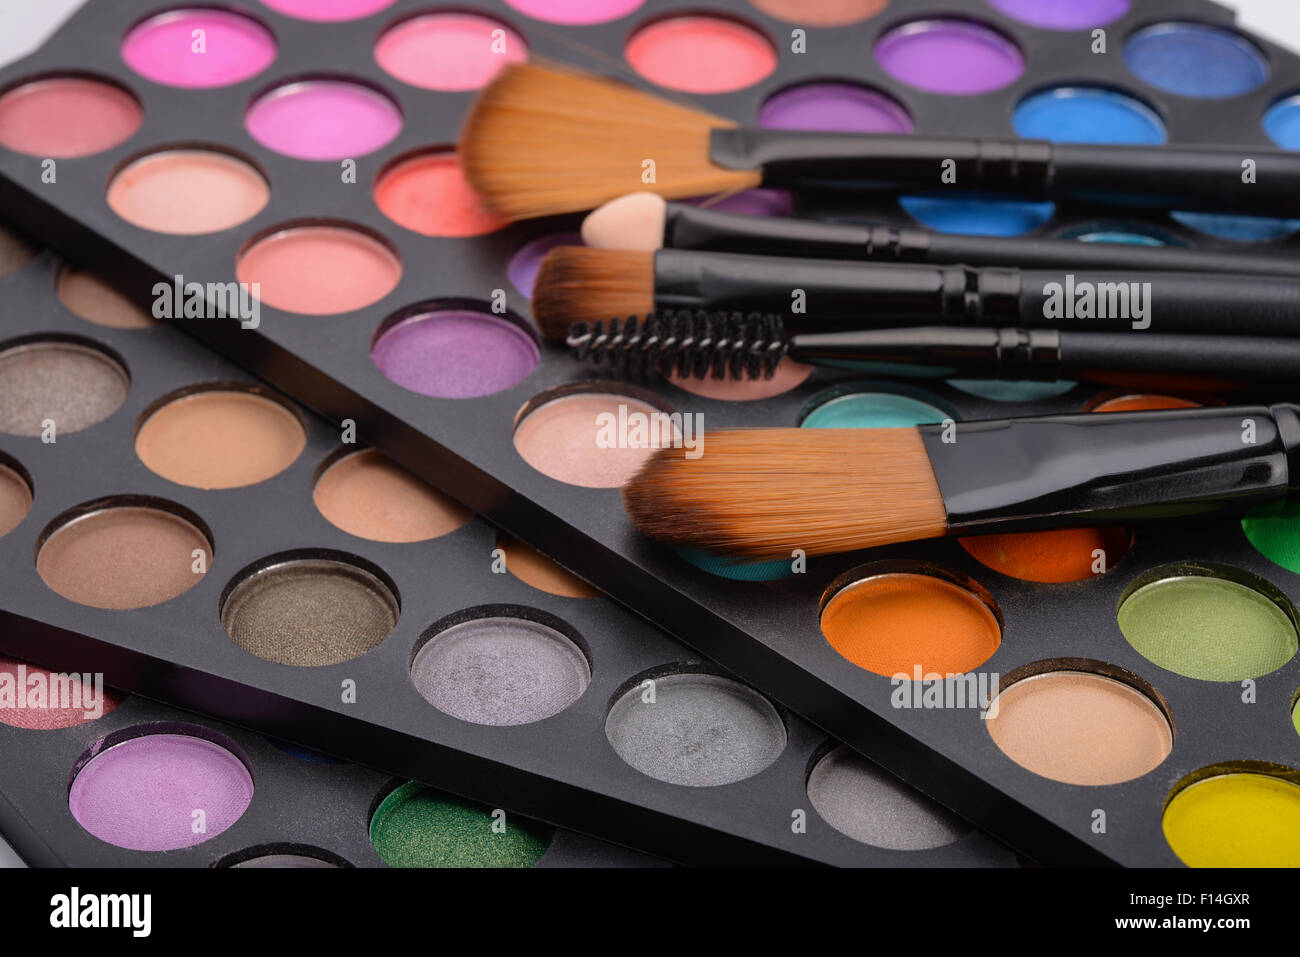 Professional blush palette and cosmetics brushes - Stock Image